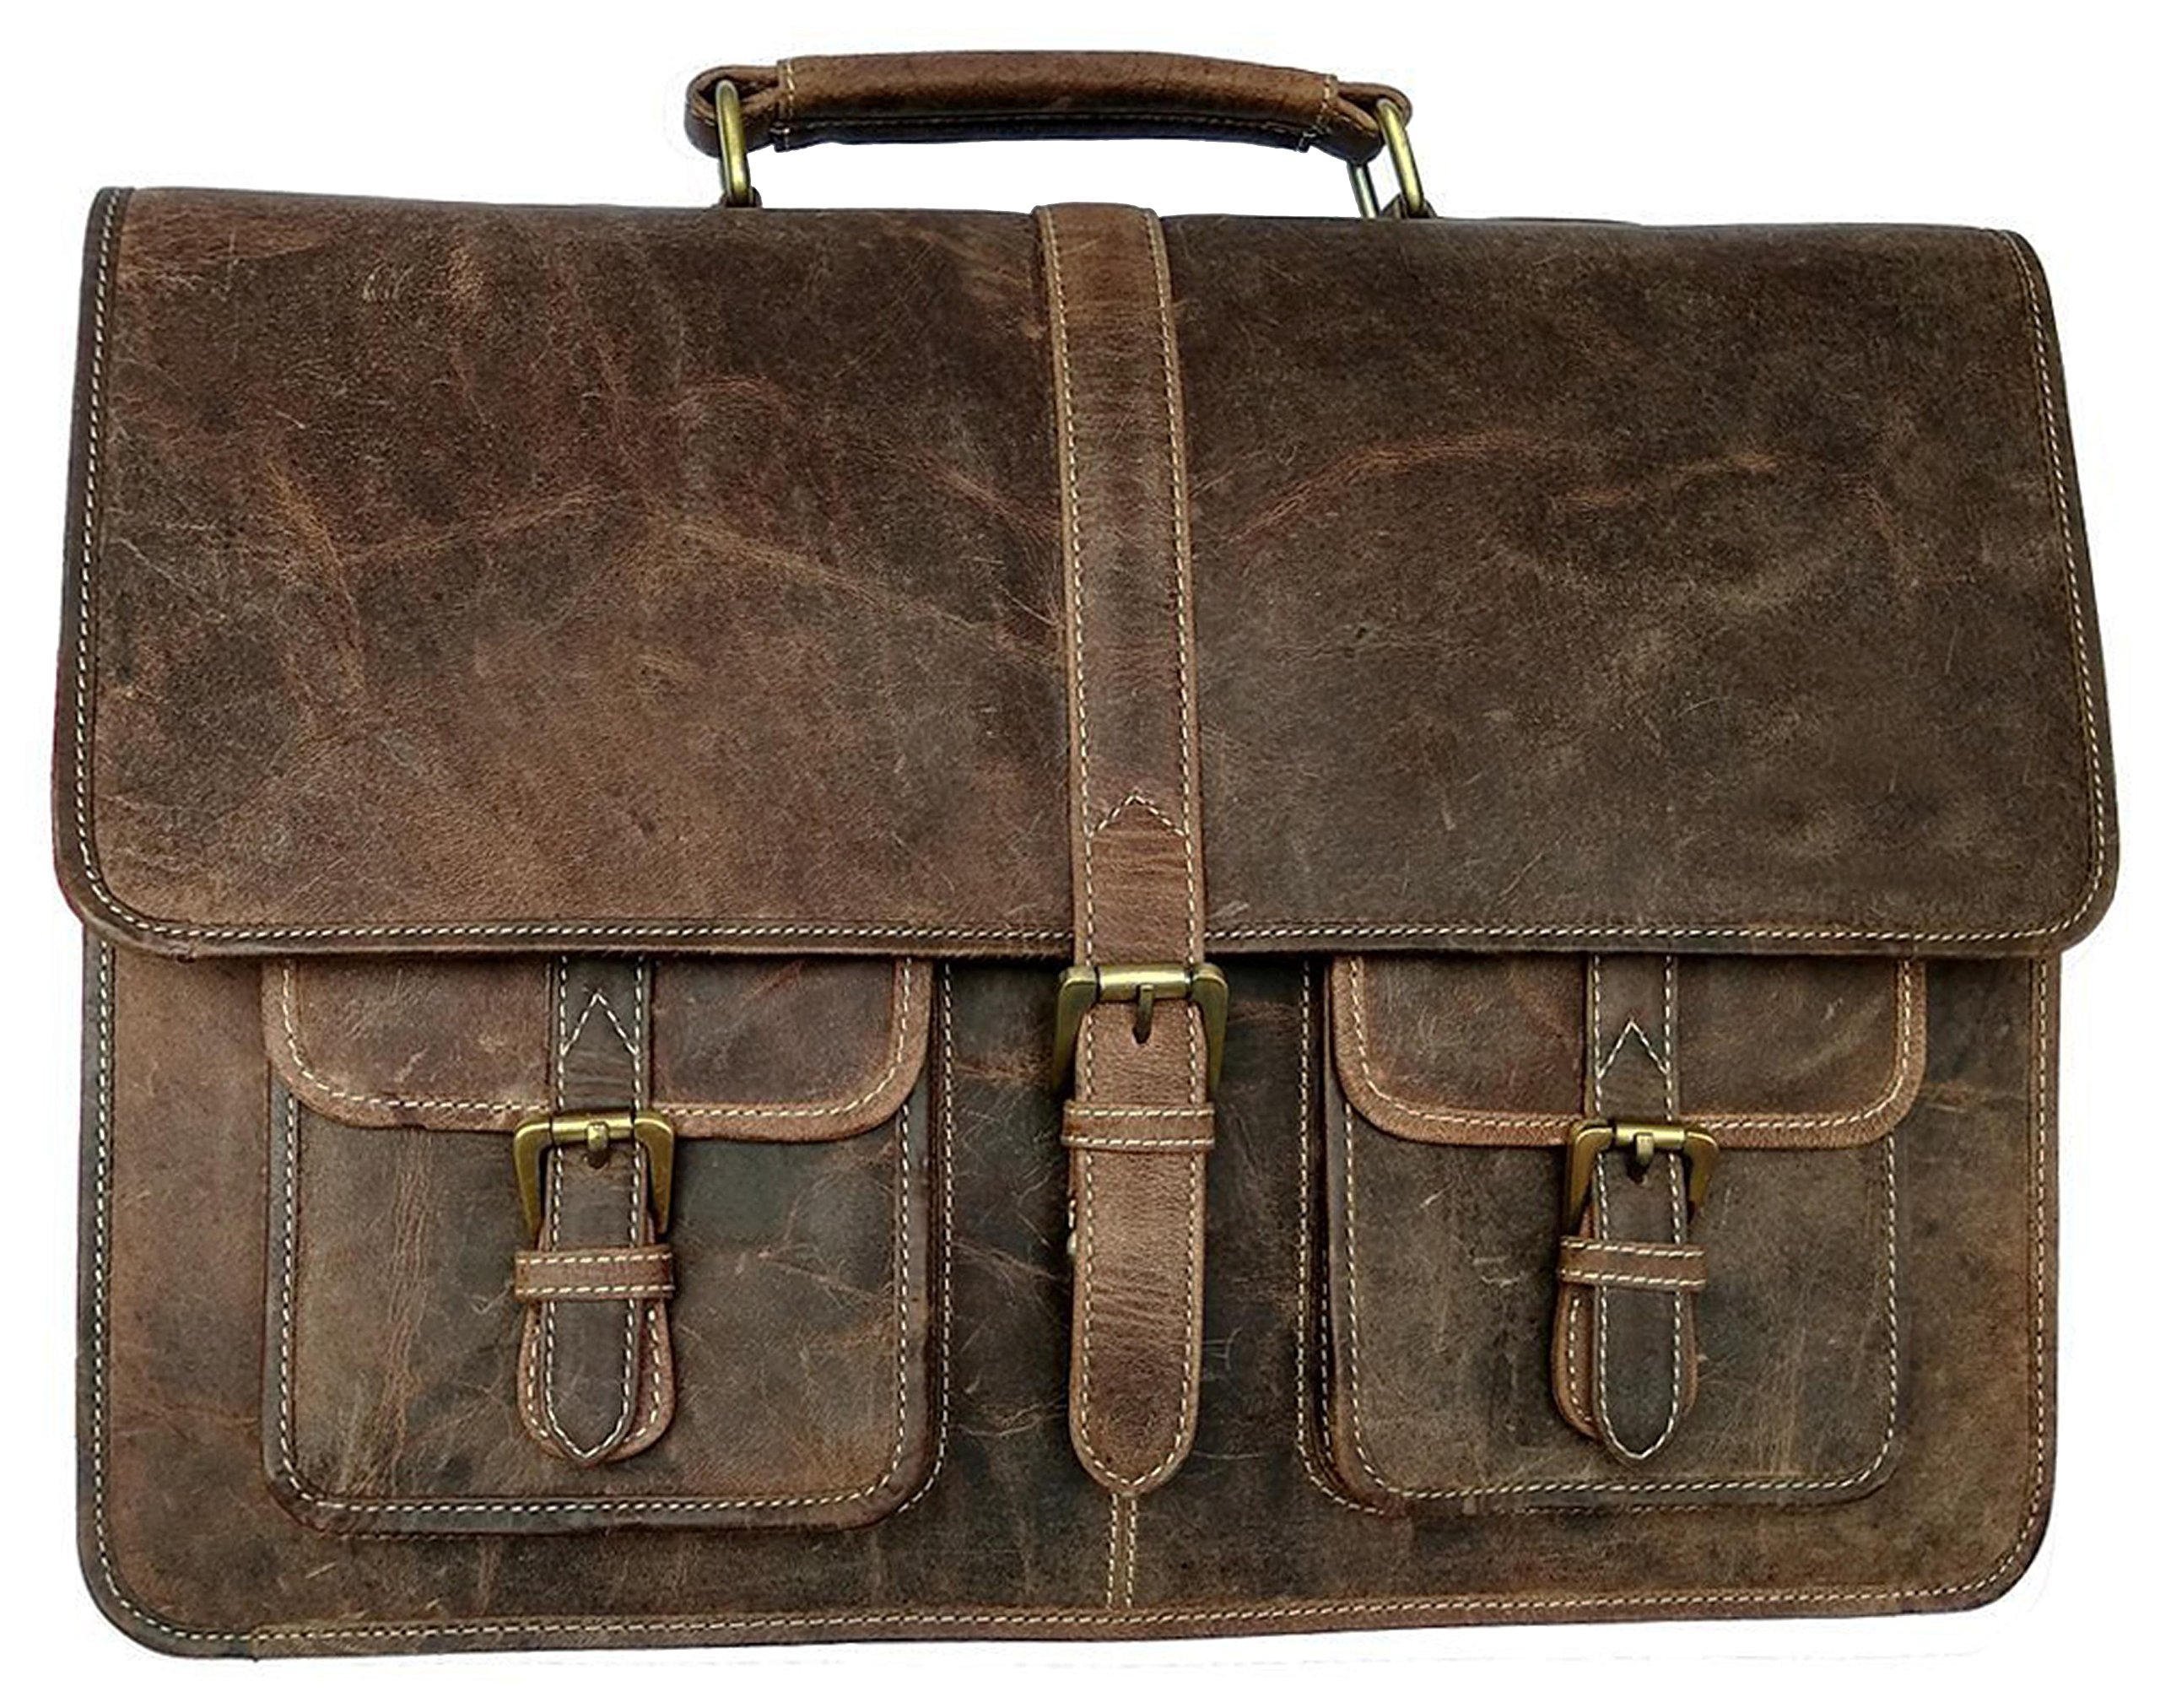 Kk's 16 Inch Leather Laptop Messenger Briefcase Bags For Men And Women by kk's leather